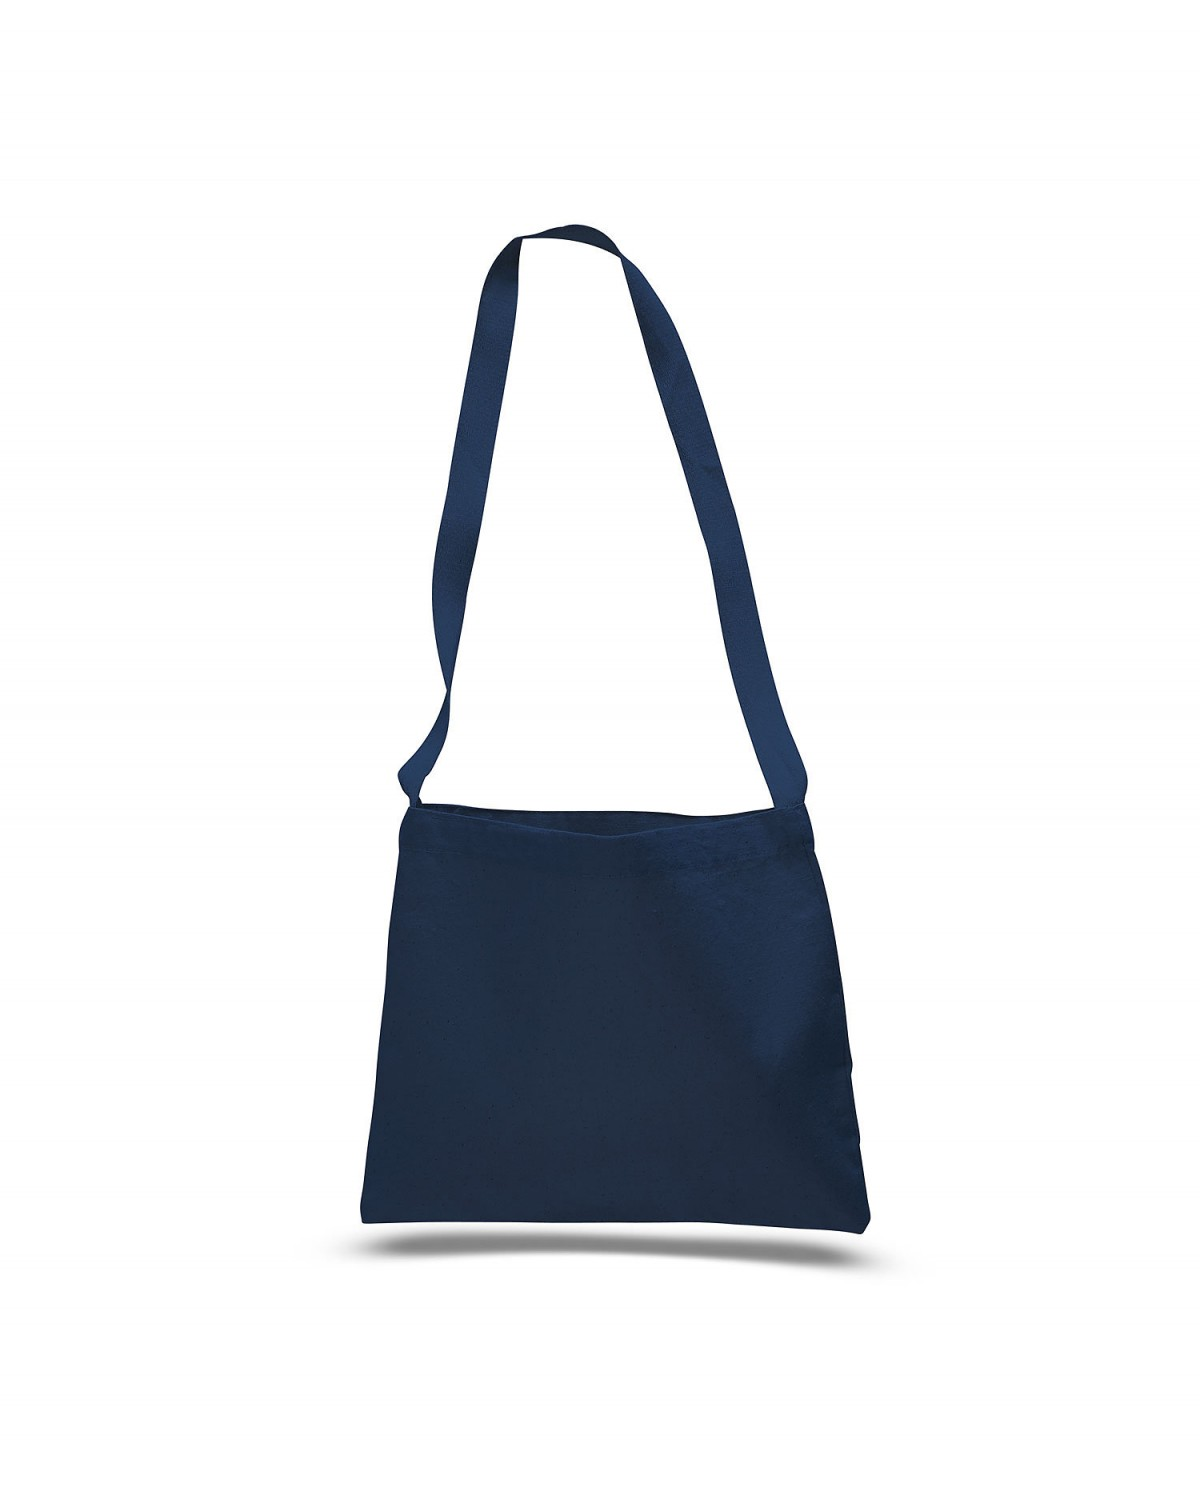 B3483 Bella + Canvas NAVY